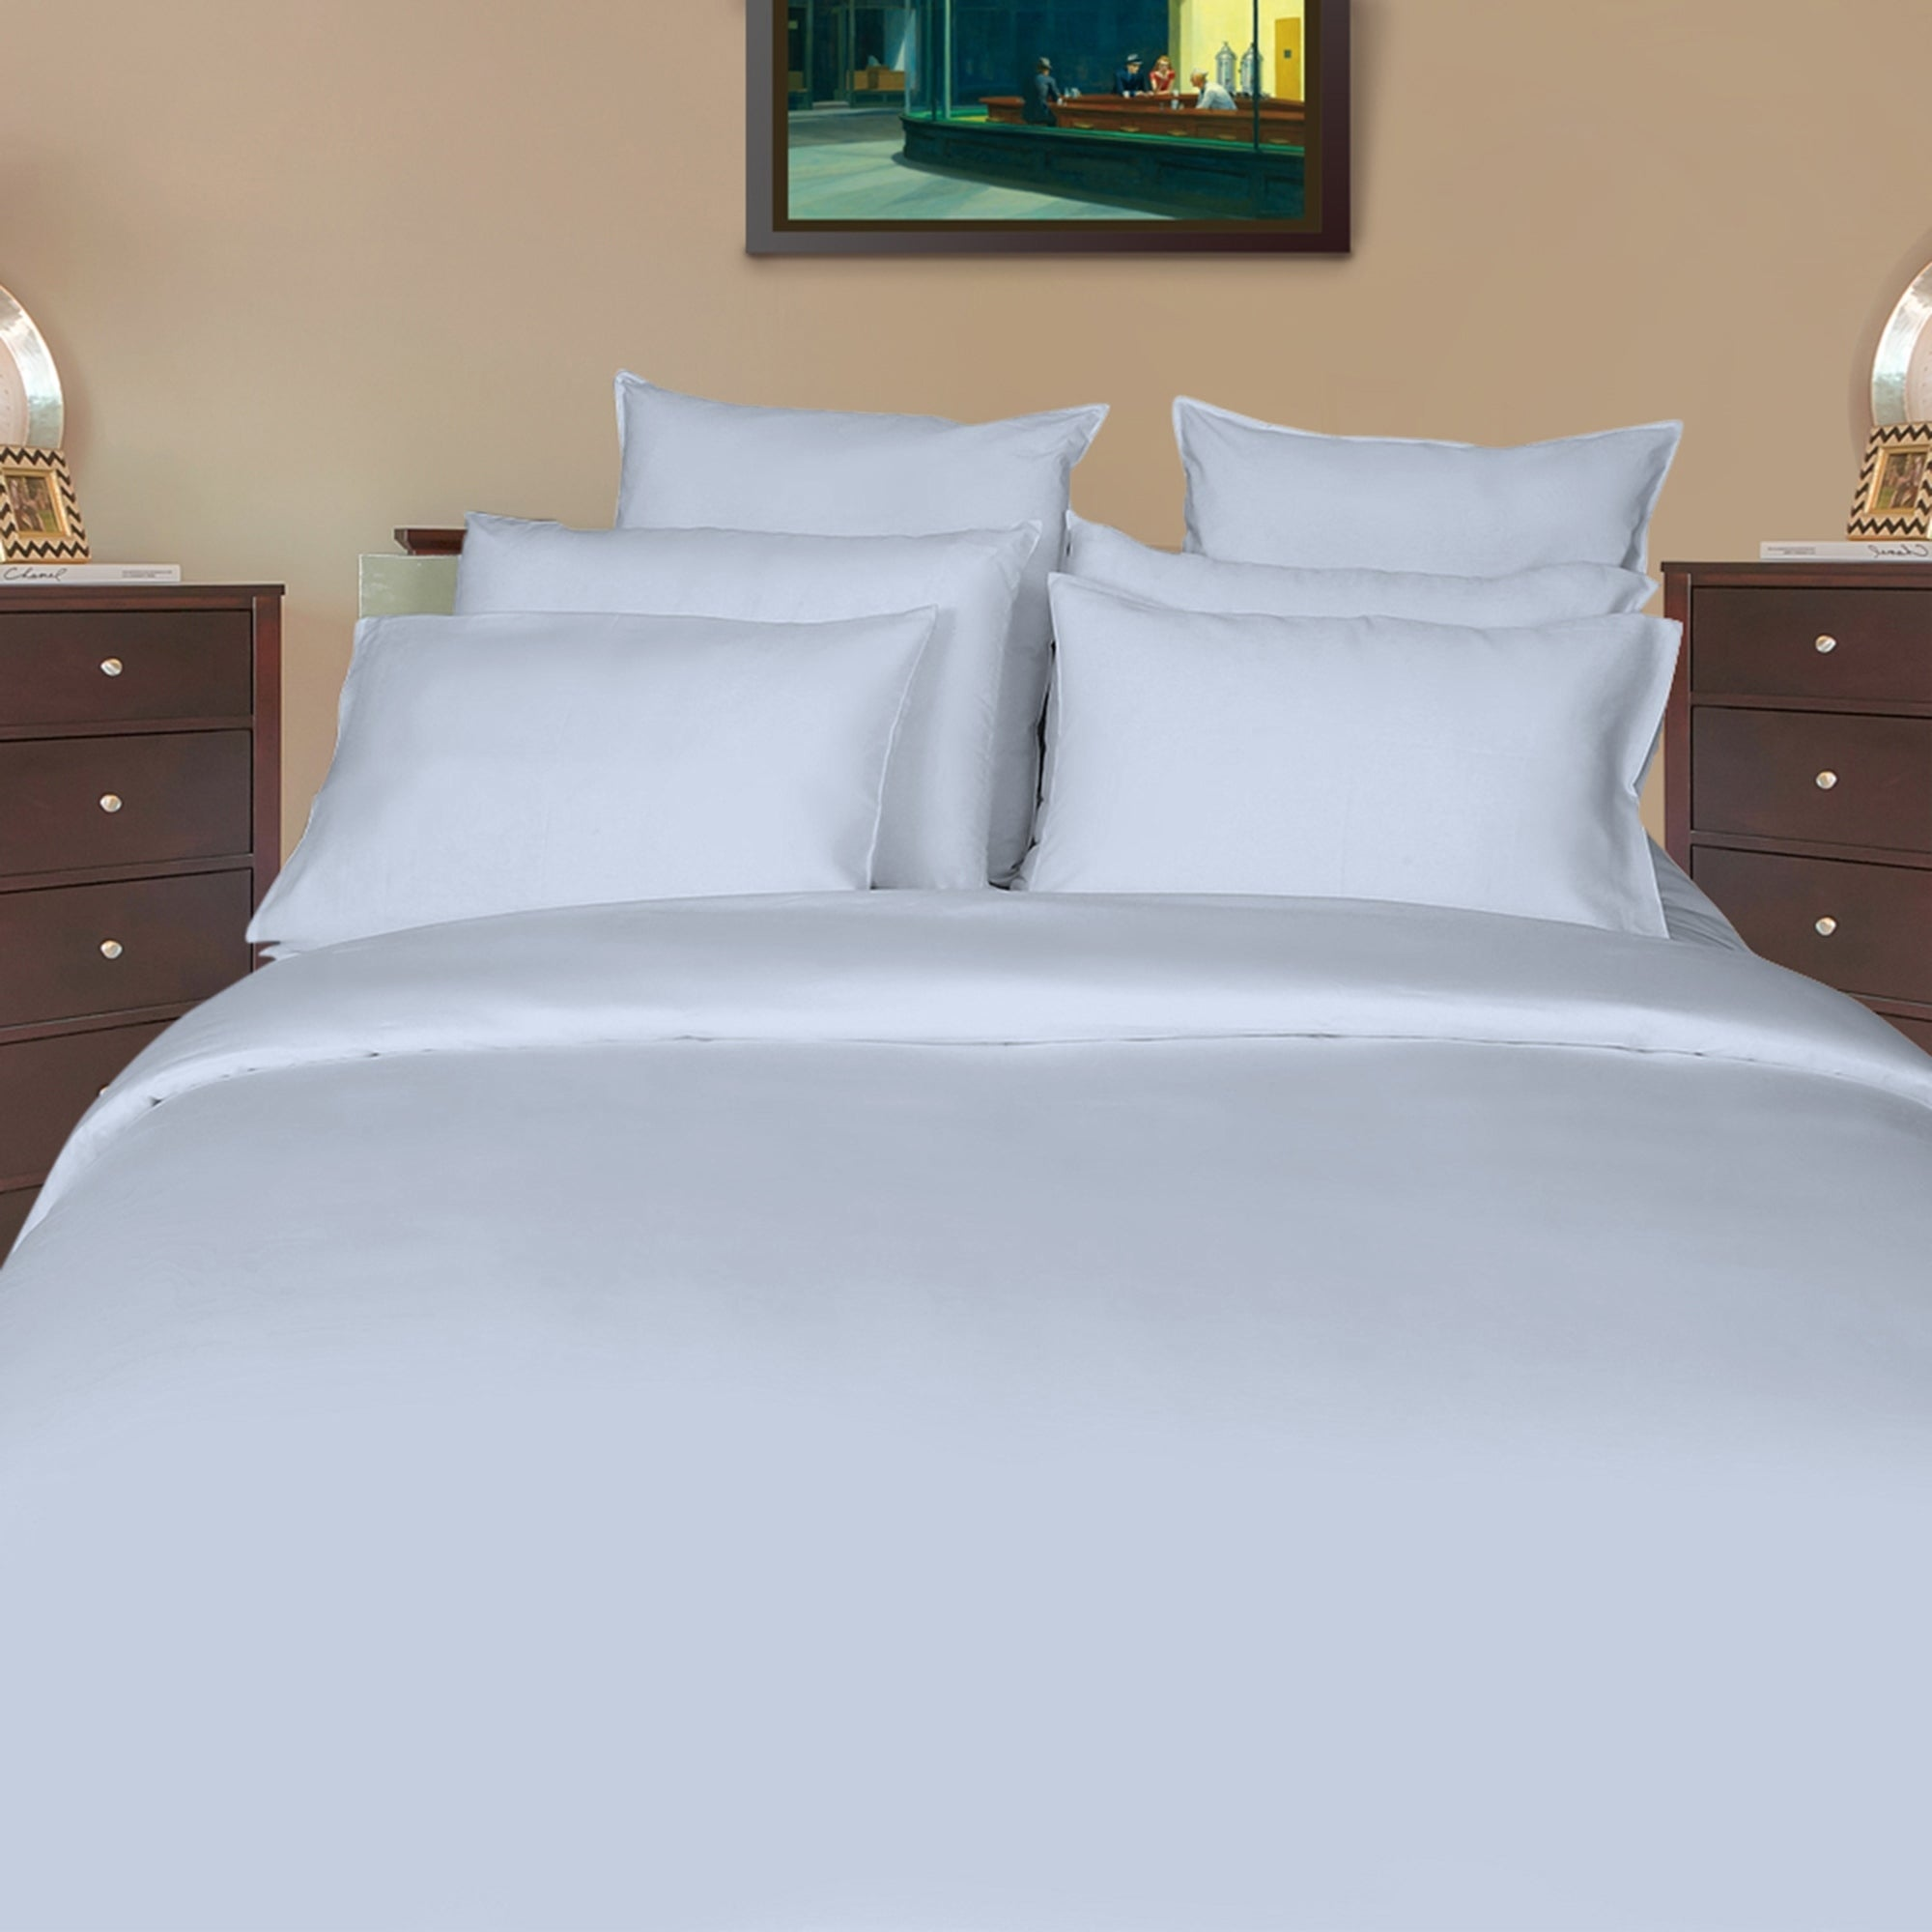 Just Linen 600 Thread Count 100% Egyptian Quality Cotton Sateen,